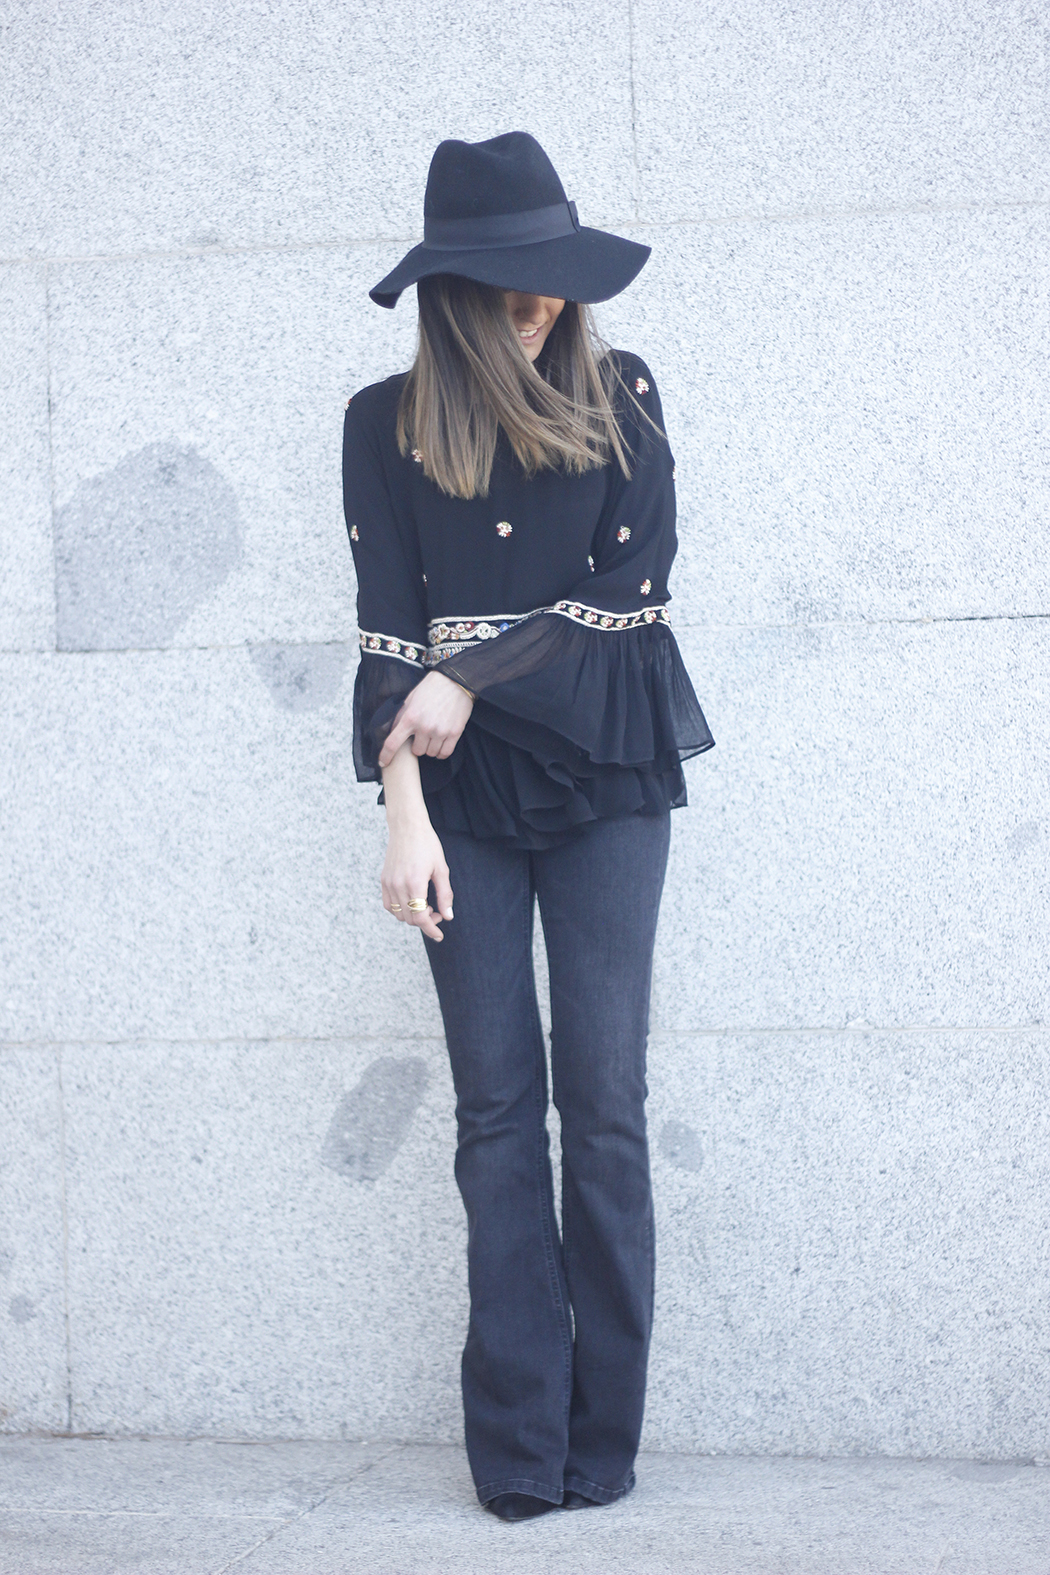 flared jeans boho blouse hat accessories outfit fashion10